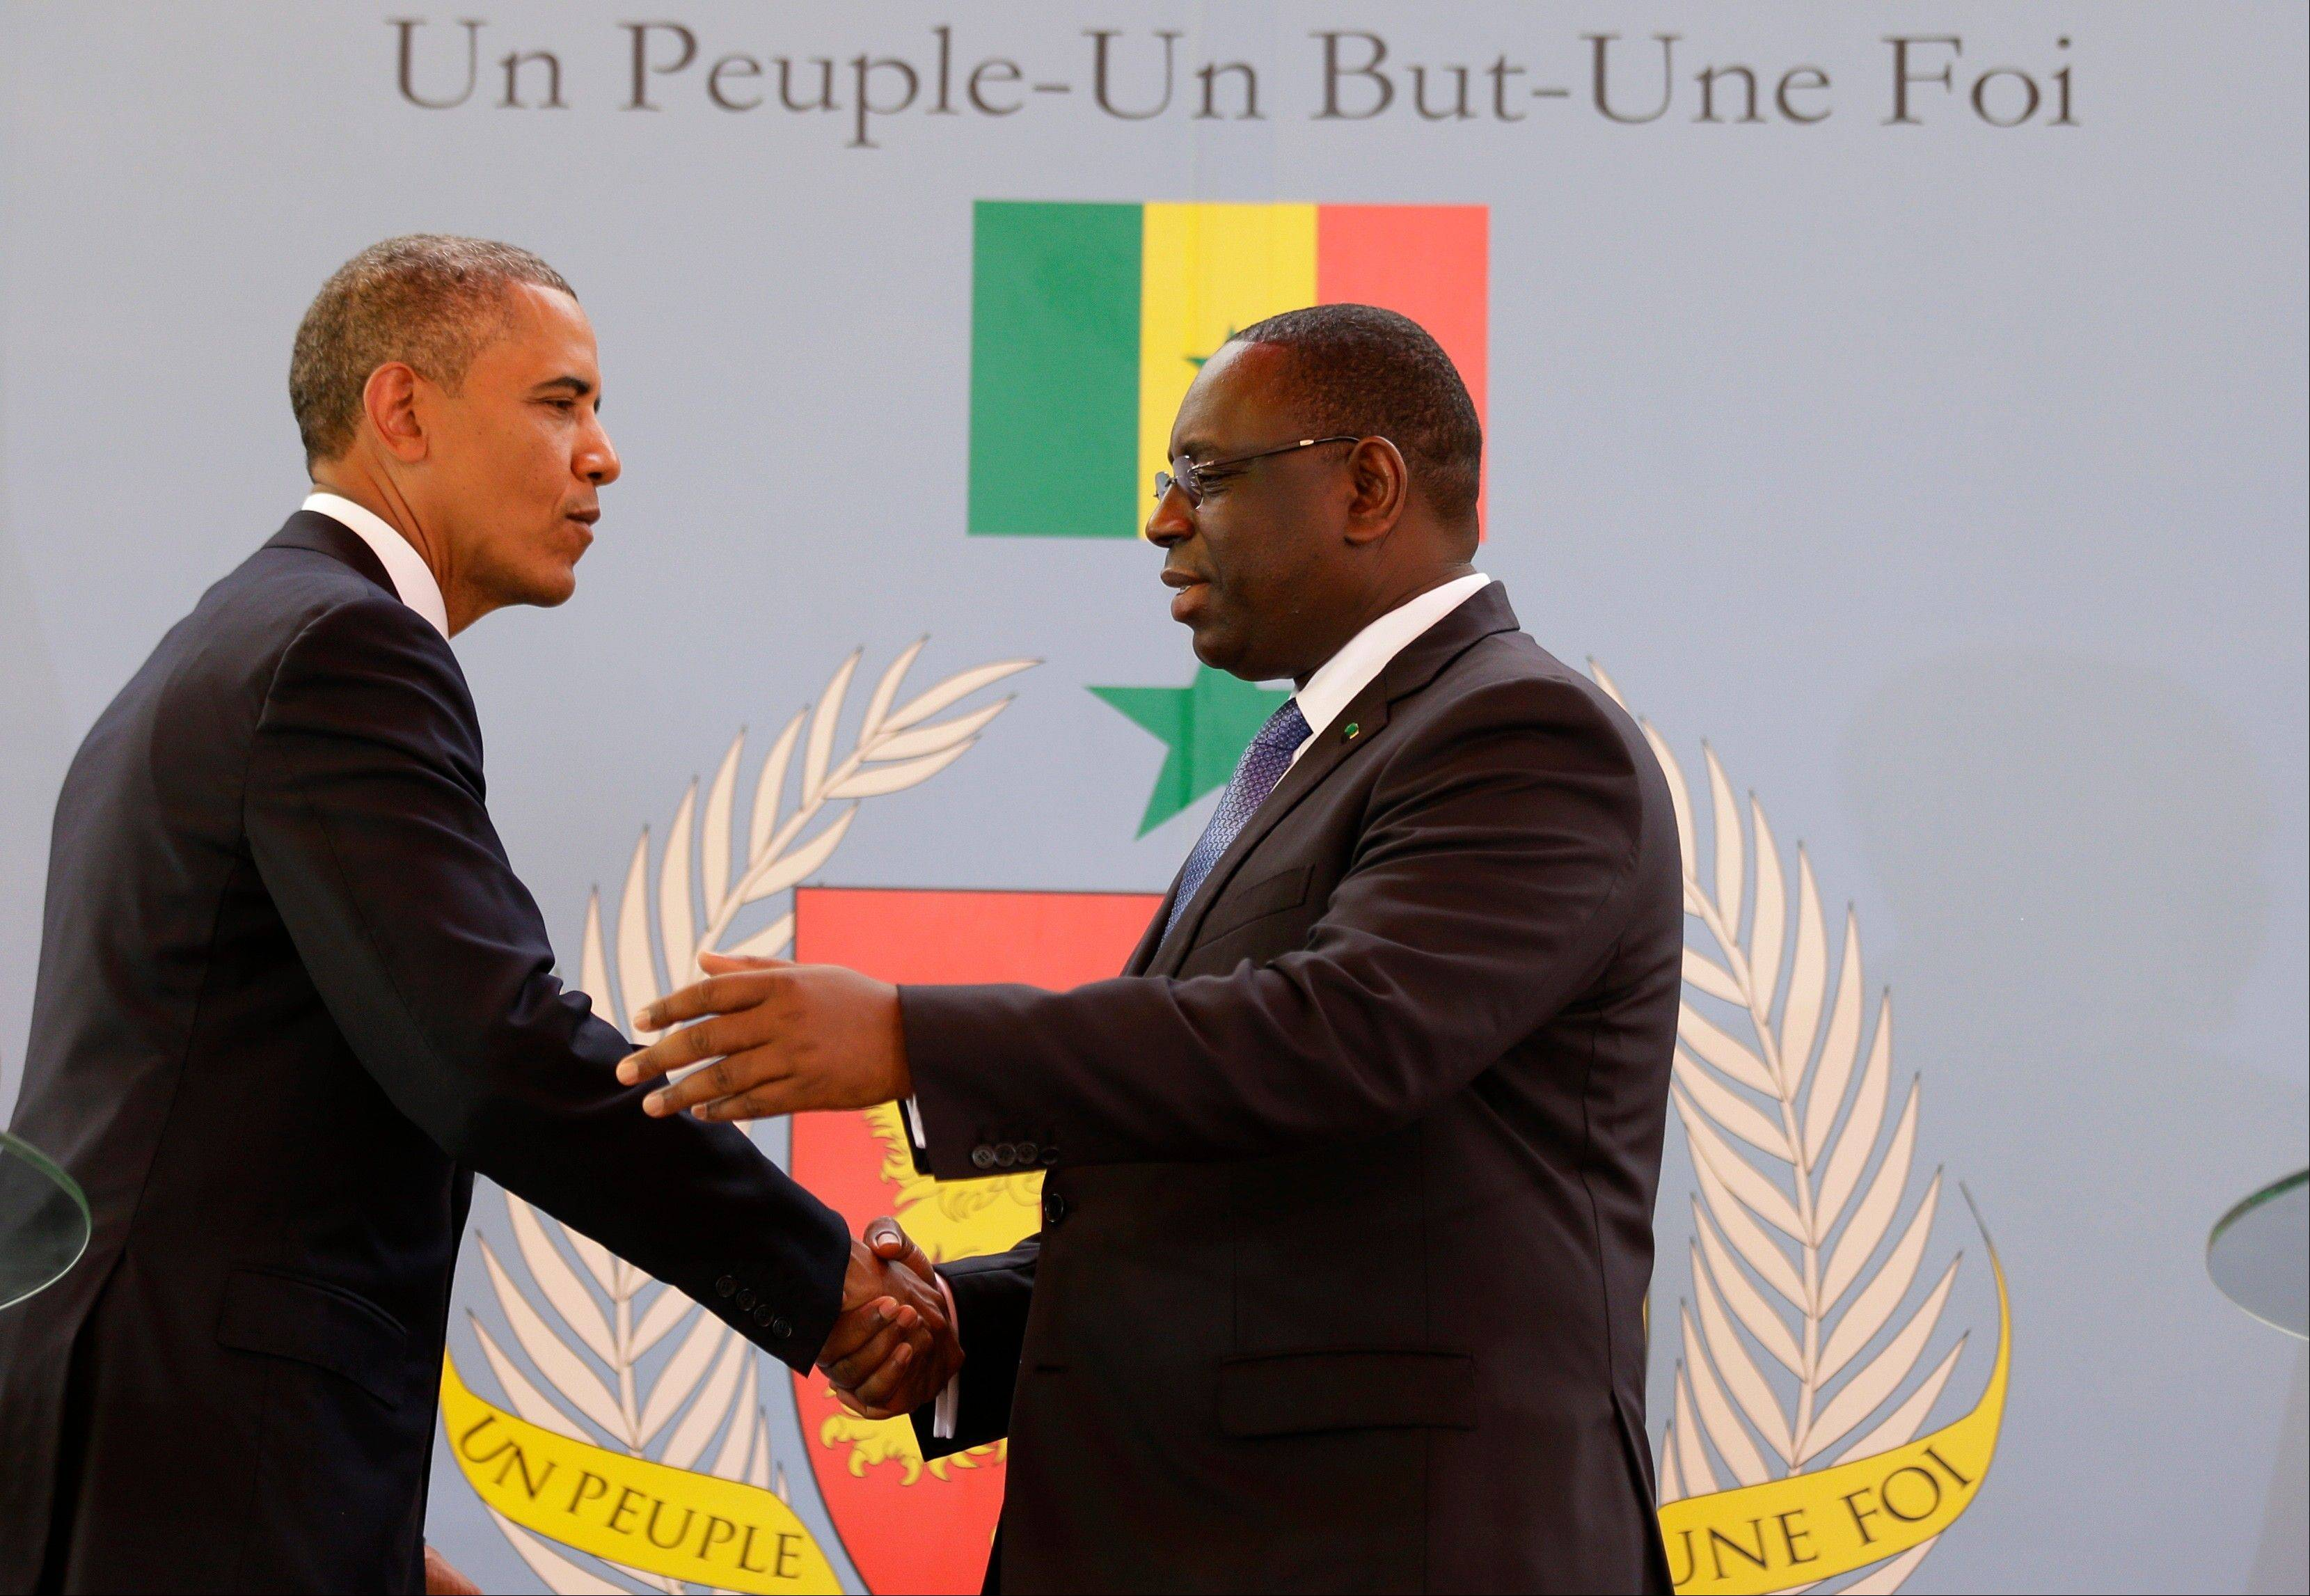 U.S. President Barack Obama, left, shakes hands with Senegalese President Macky Sall after a joint press conference at the presidential palace in Dakar, Senegal, Thursday, June 27, 2013. Senegal's national slogan, printed on the wall behind them, reads 'One People, One Goal, One Faith.'